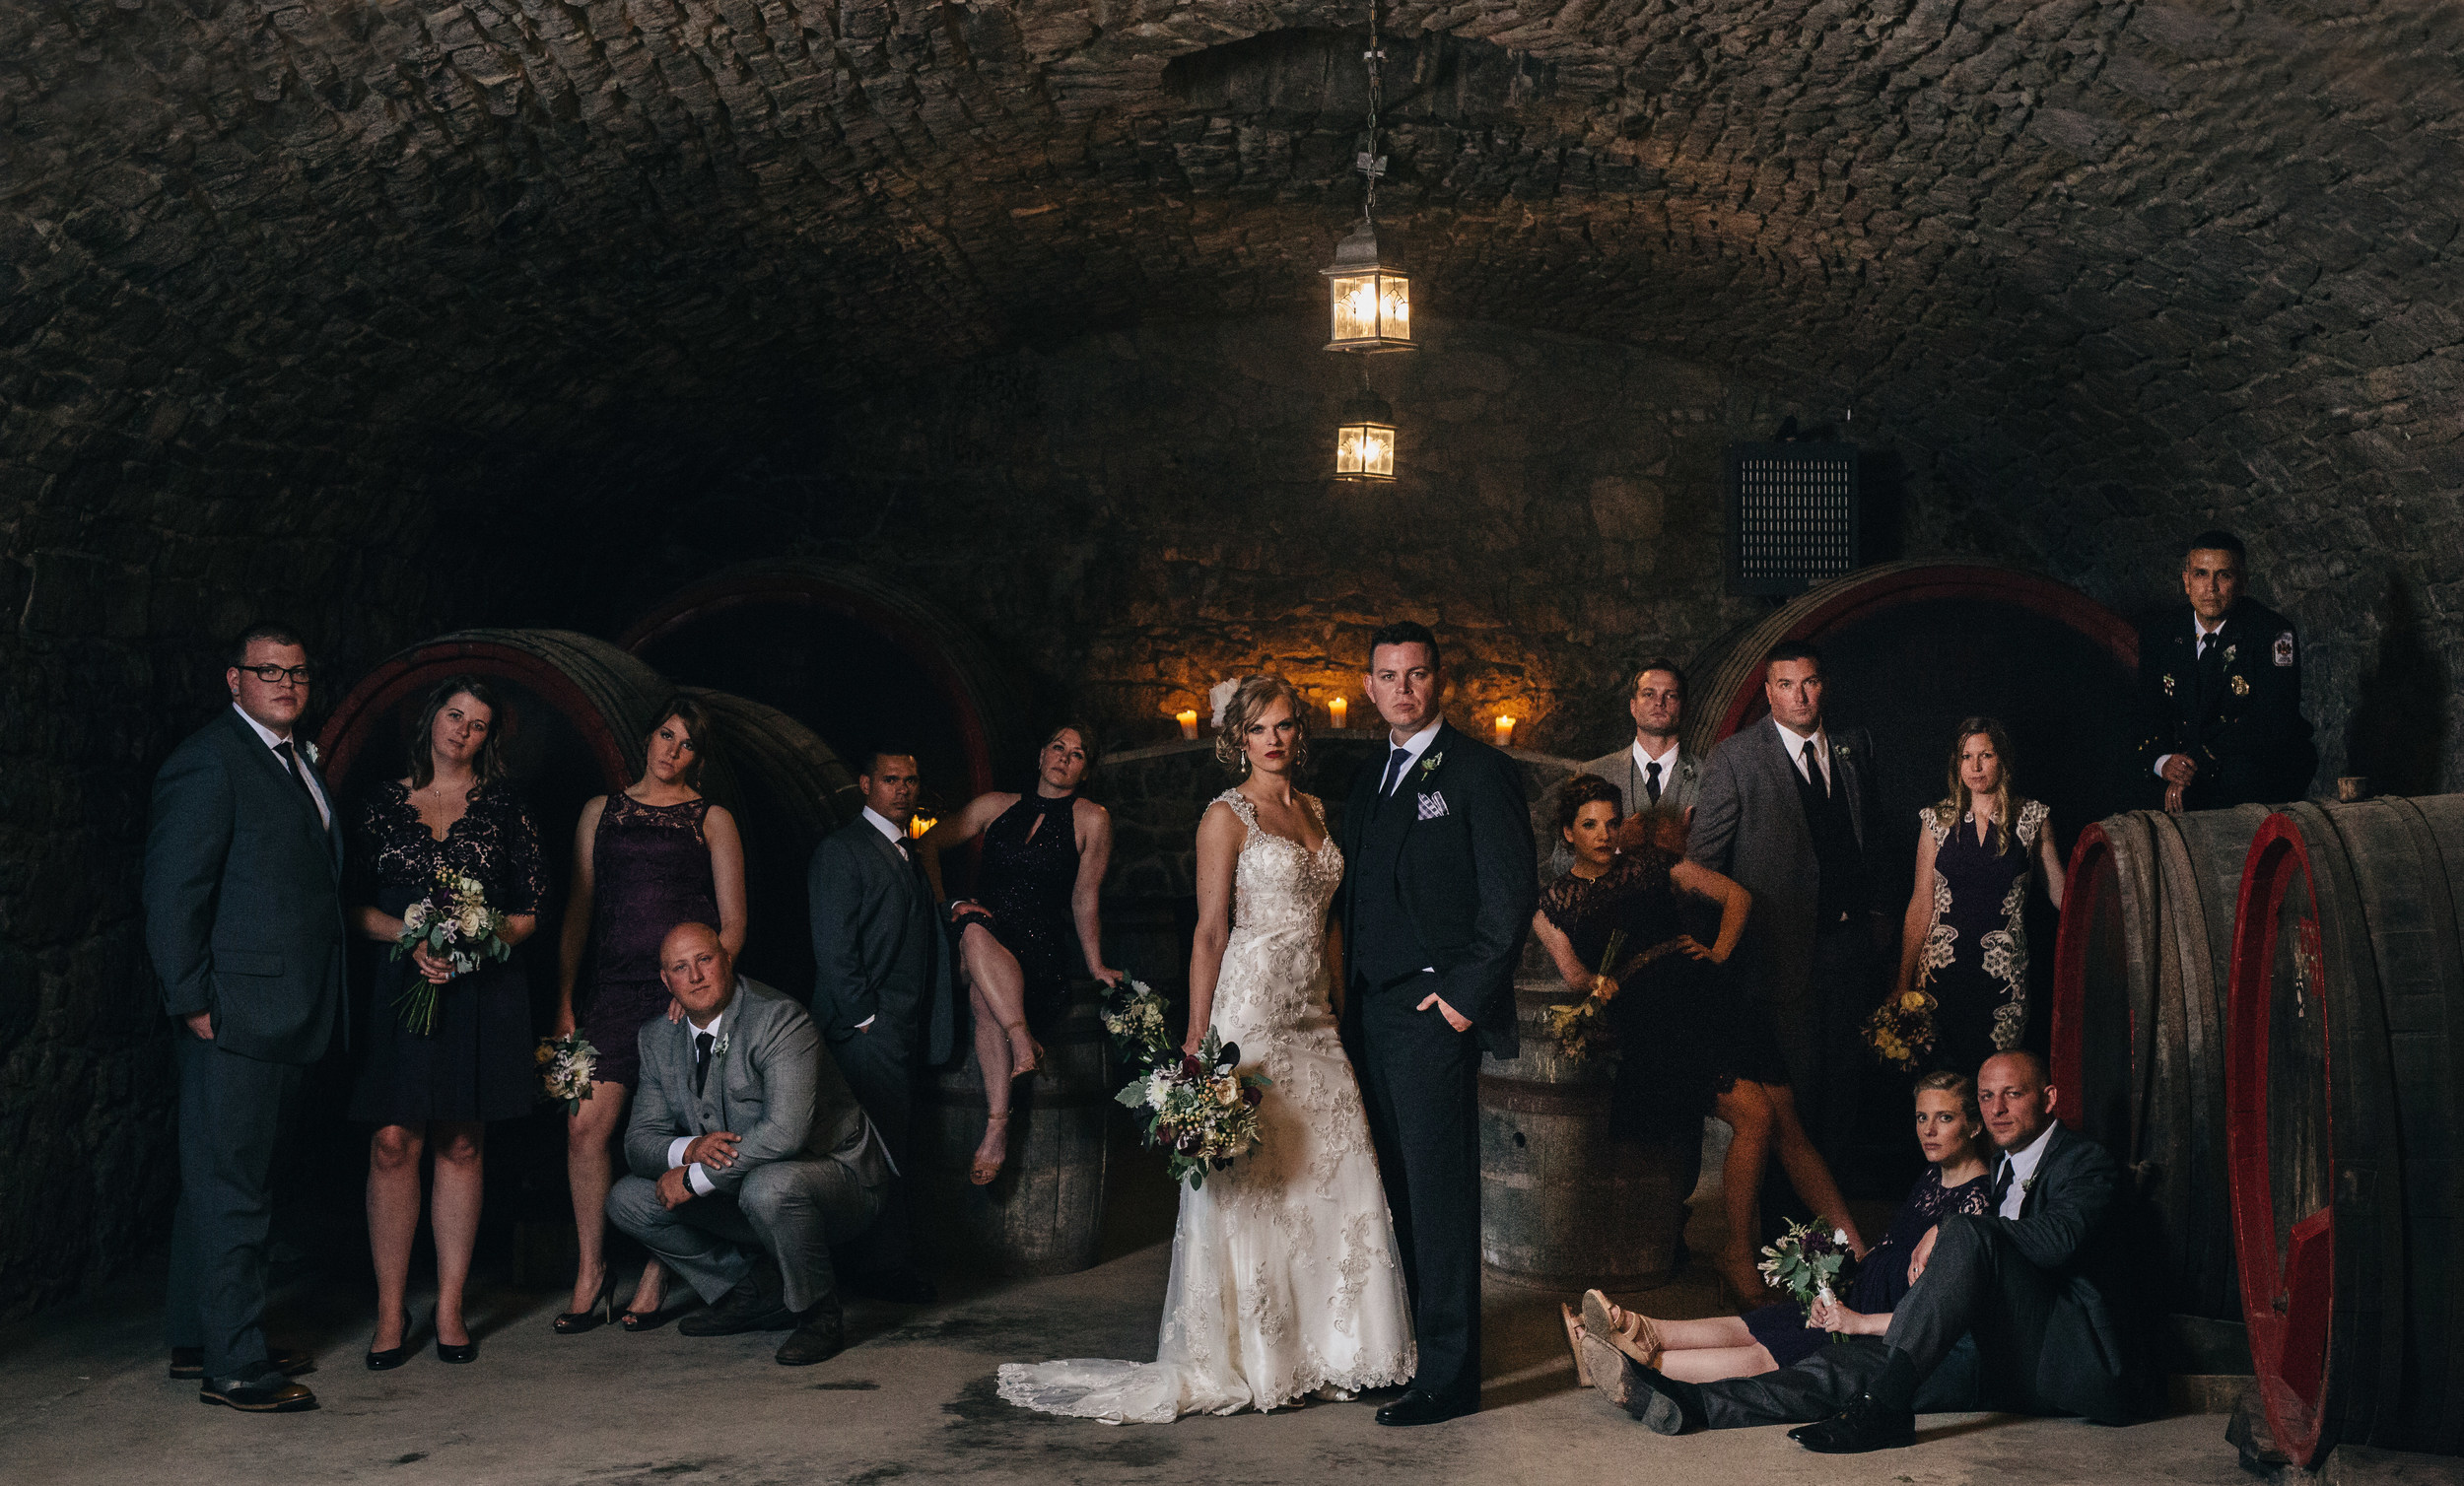 Annie Leibovitz style bridal party wedding photography.